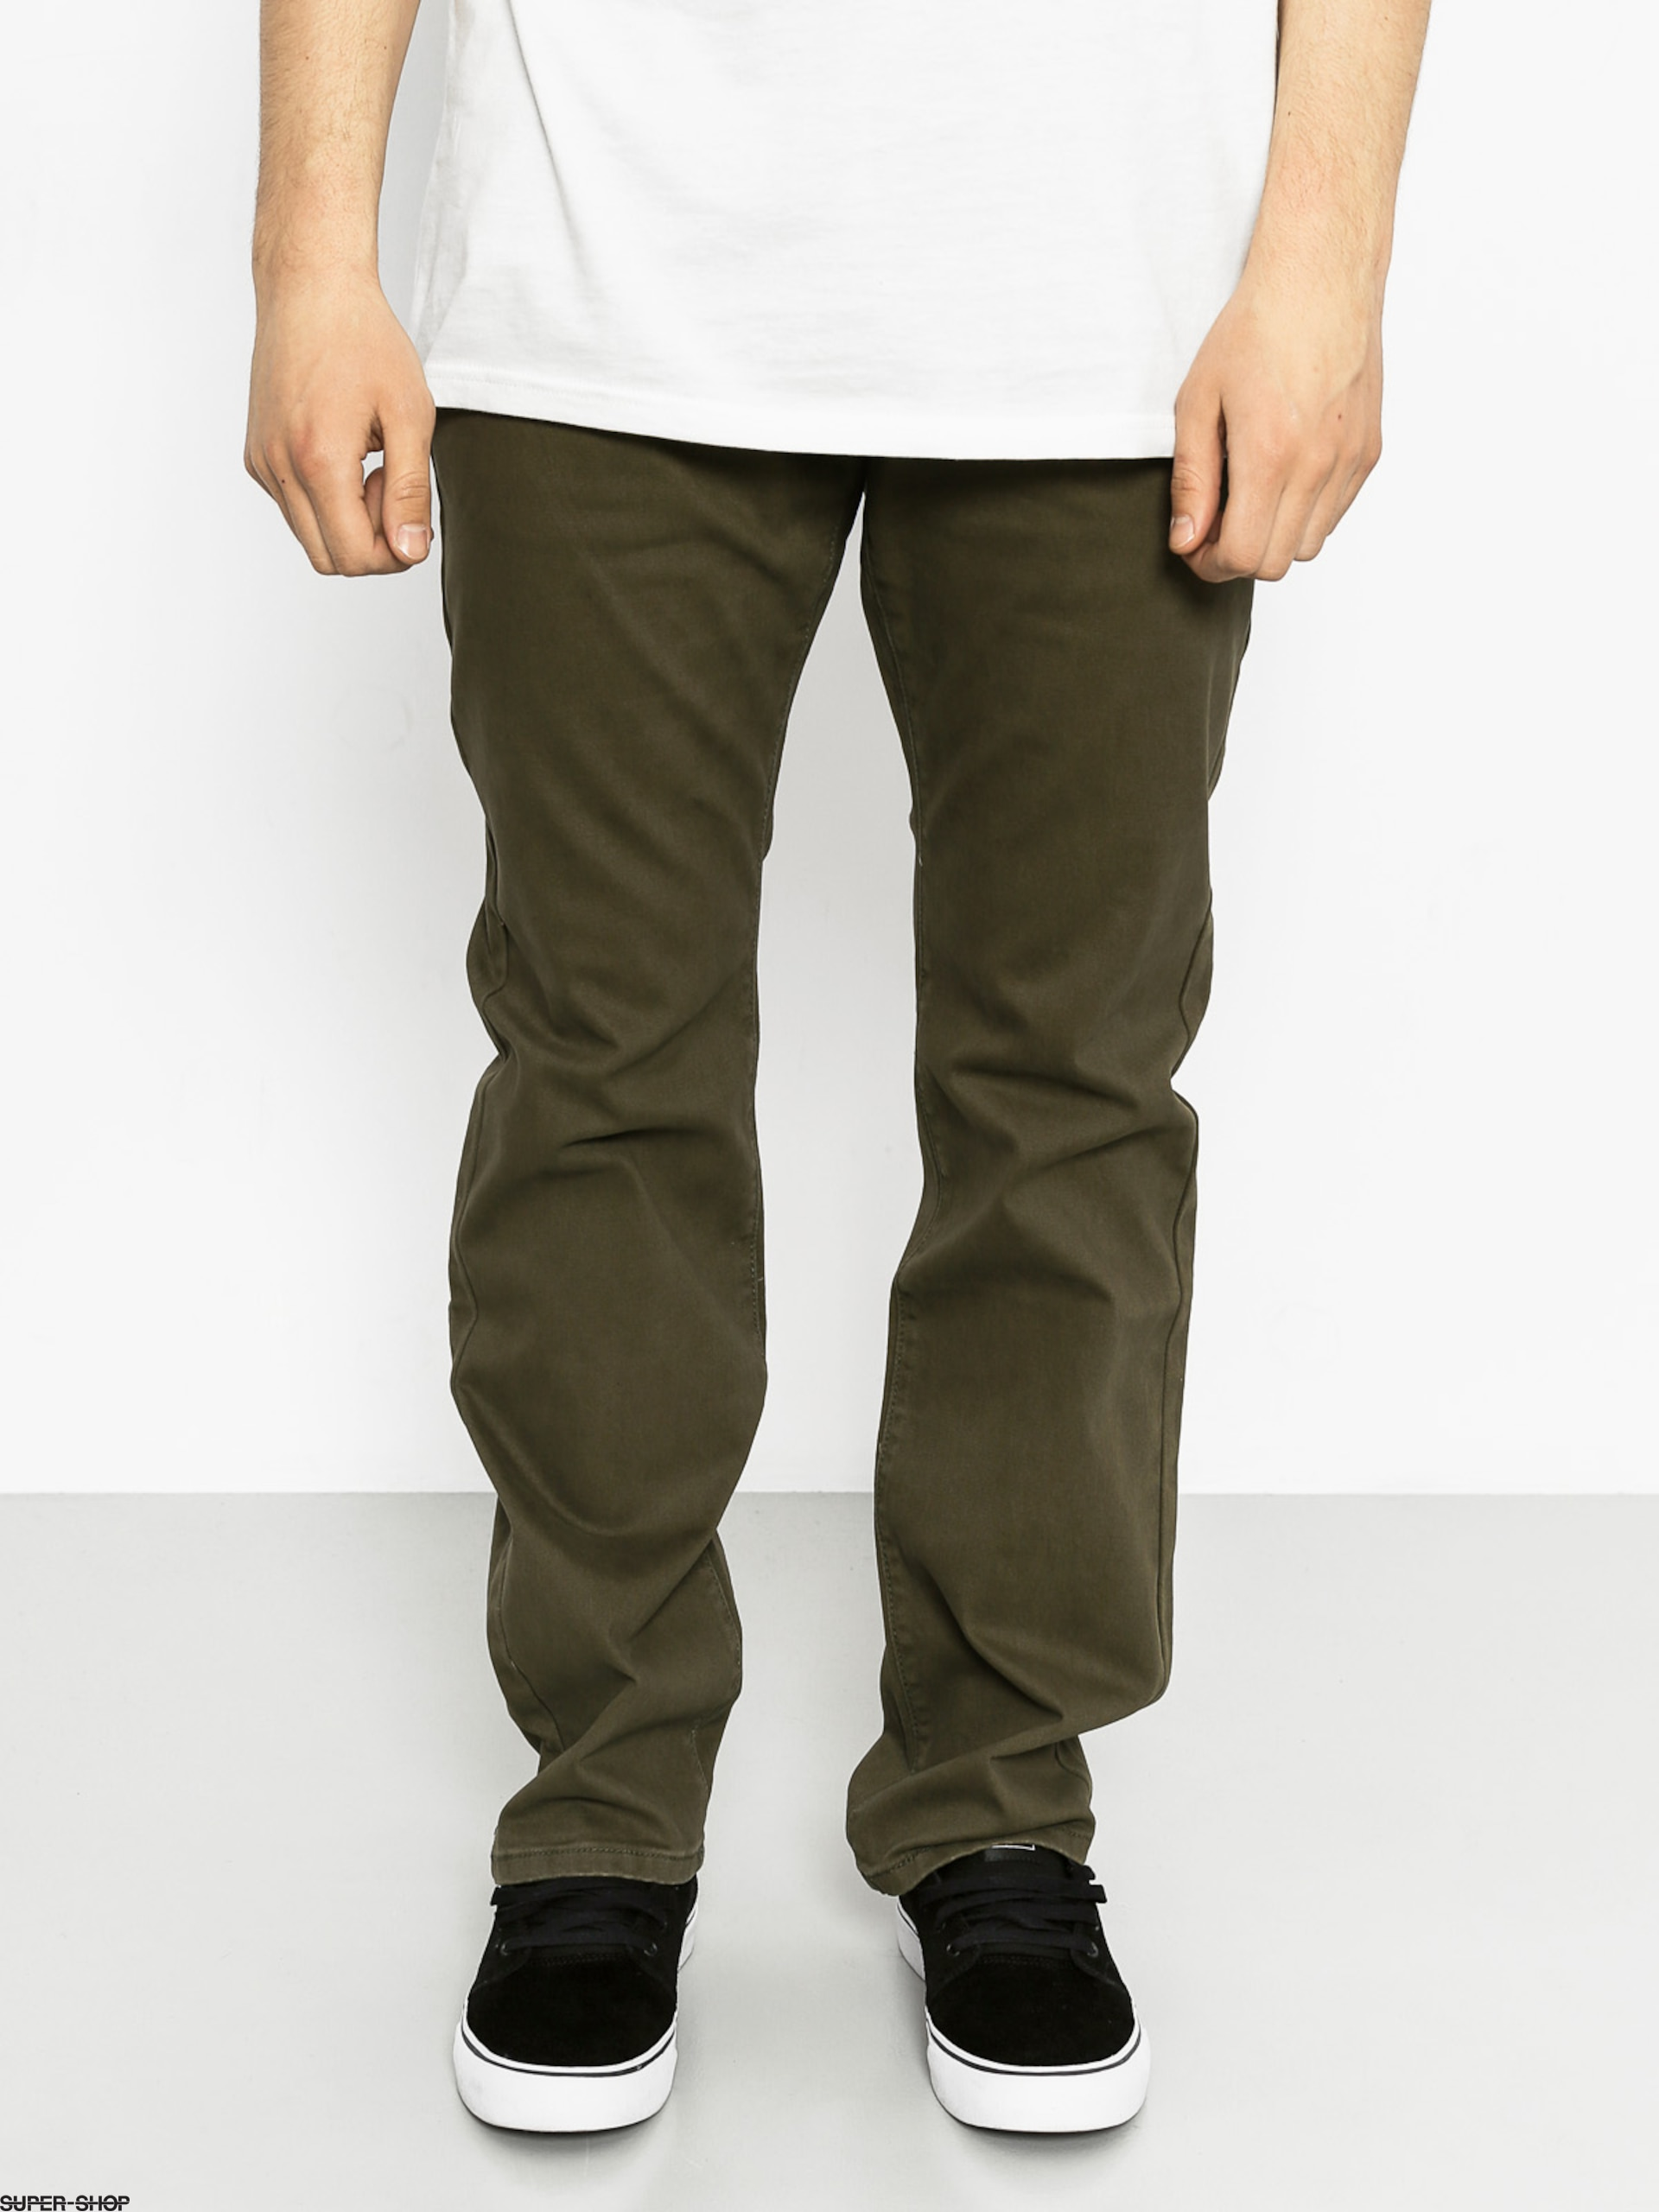 Malita pants Rotten Slim Fit (grn)